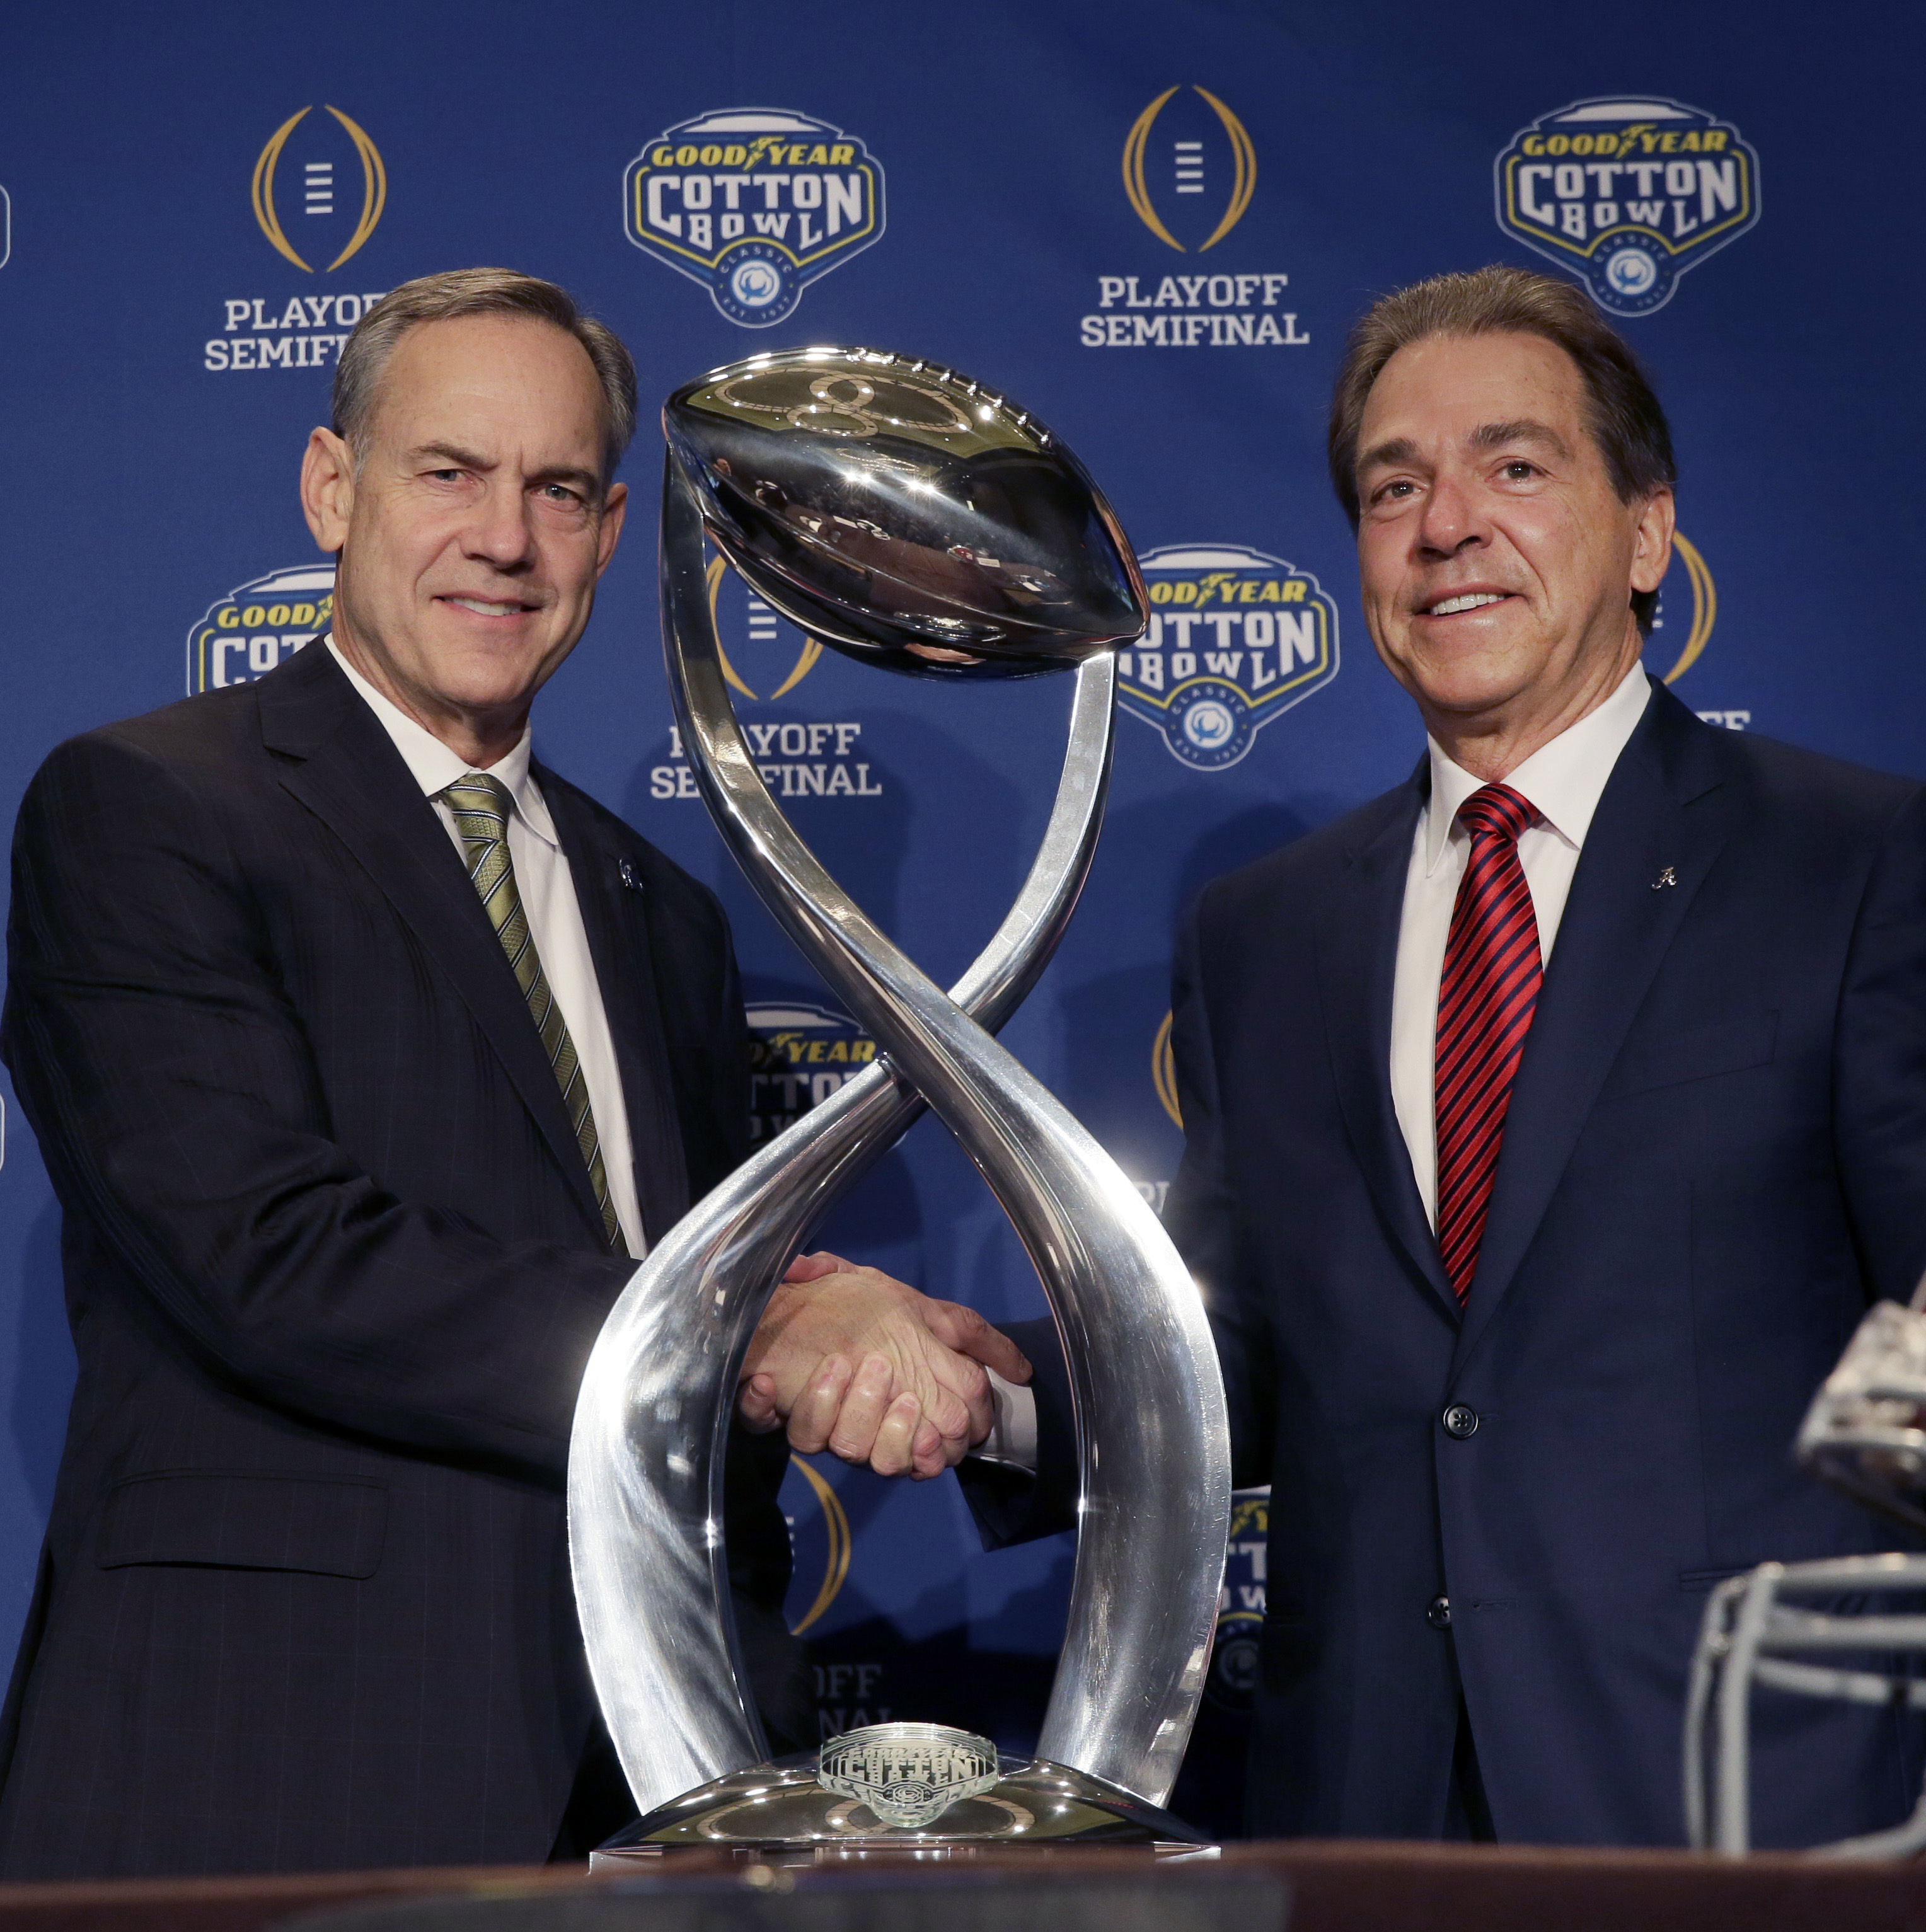 Michigan State head coach Mark Dantonio, left, and Alabama head coach Nick Saban  shake hands and pose for after a news conference for the Cotton Bowl NCAA college football game Wednesday, Dec. 30, 2015, in Arlington, Texas. Alabama and Michigan State fac